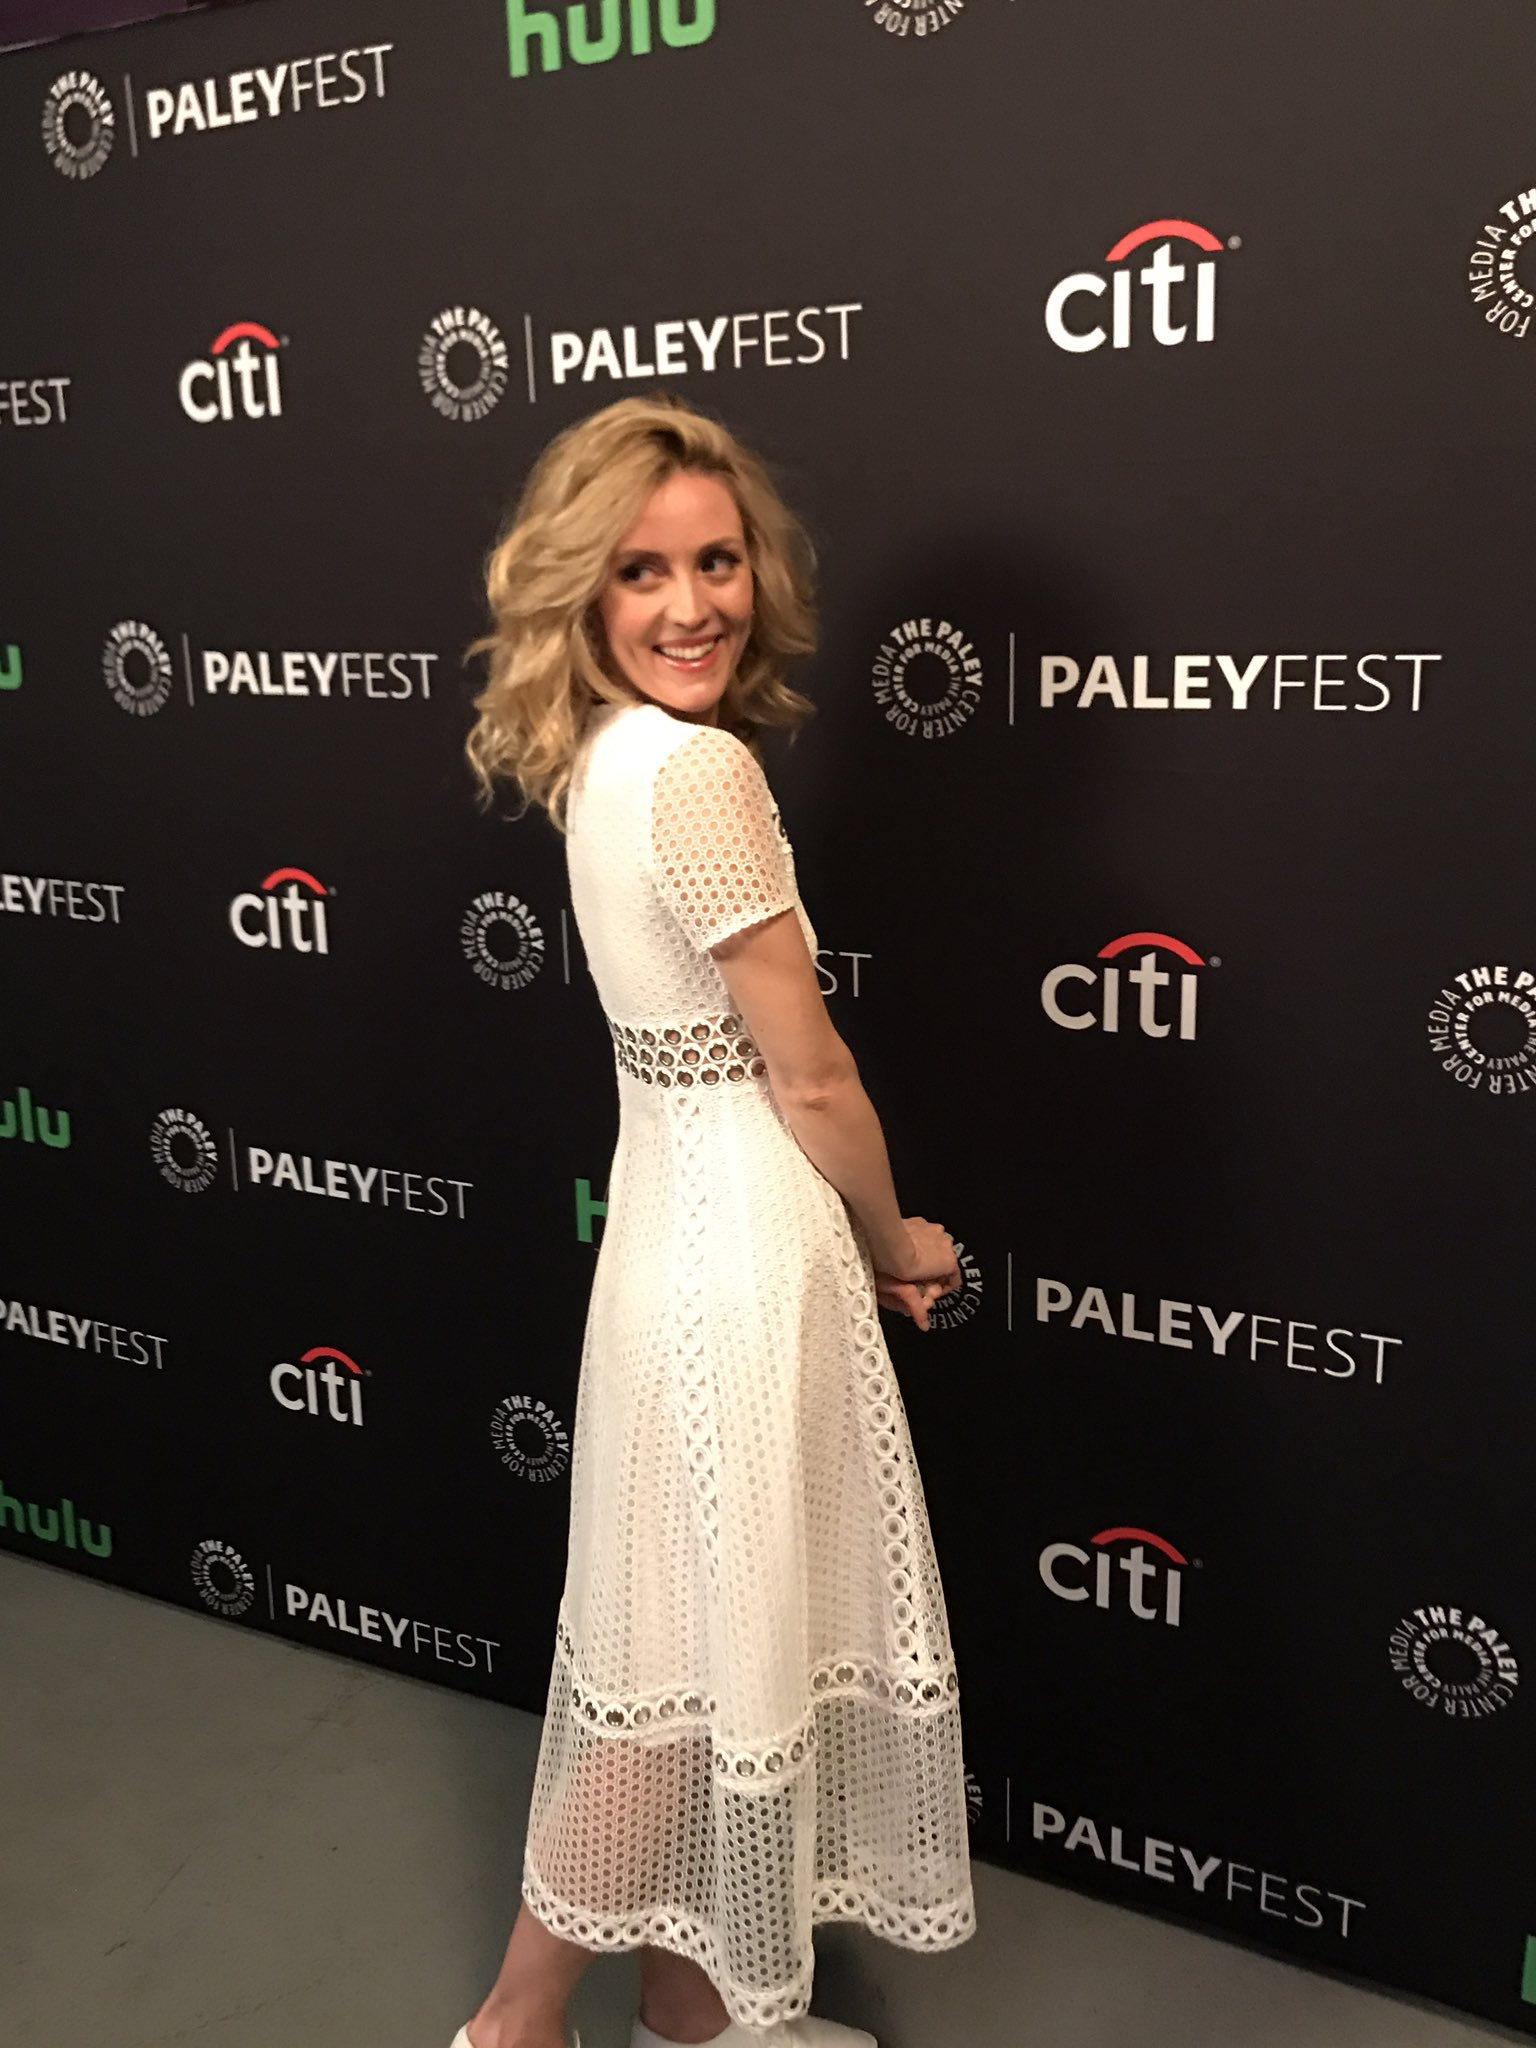 Evelyne Brochu looking positively angelic for @OrphanBlack at #PaleyFest tonight. 😇👯🌟 https://t.co/QaQuDrfi0q